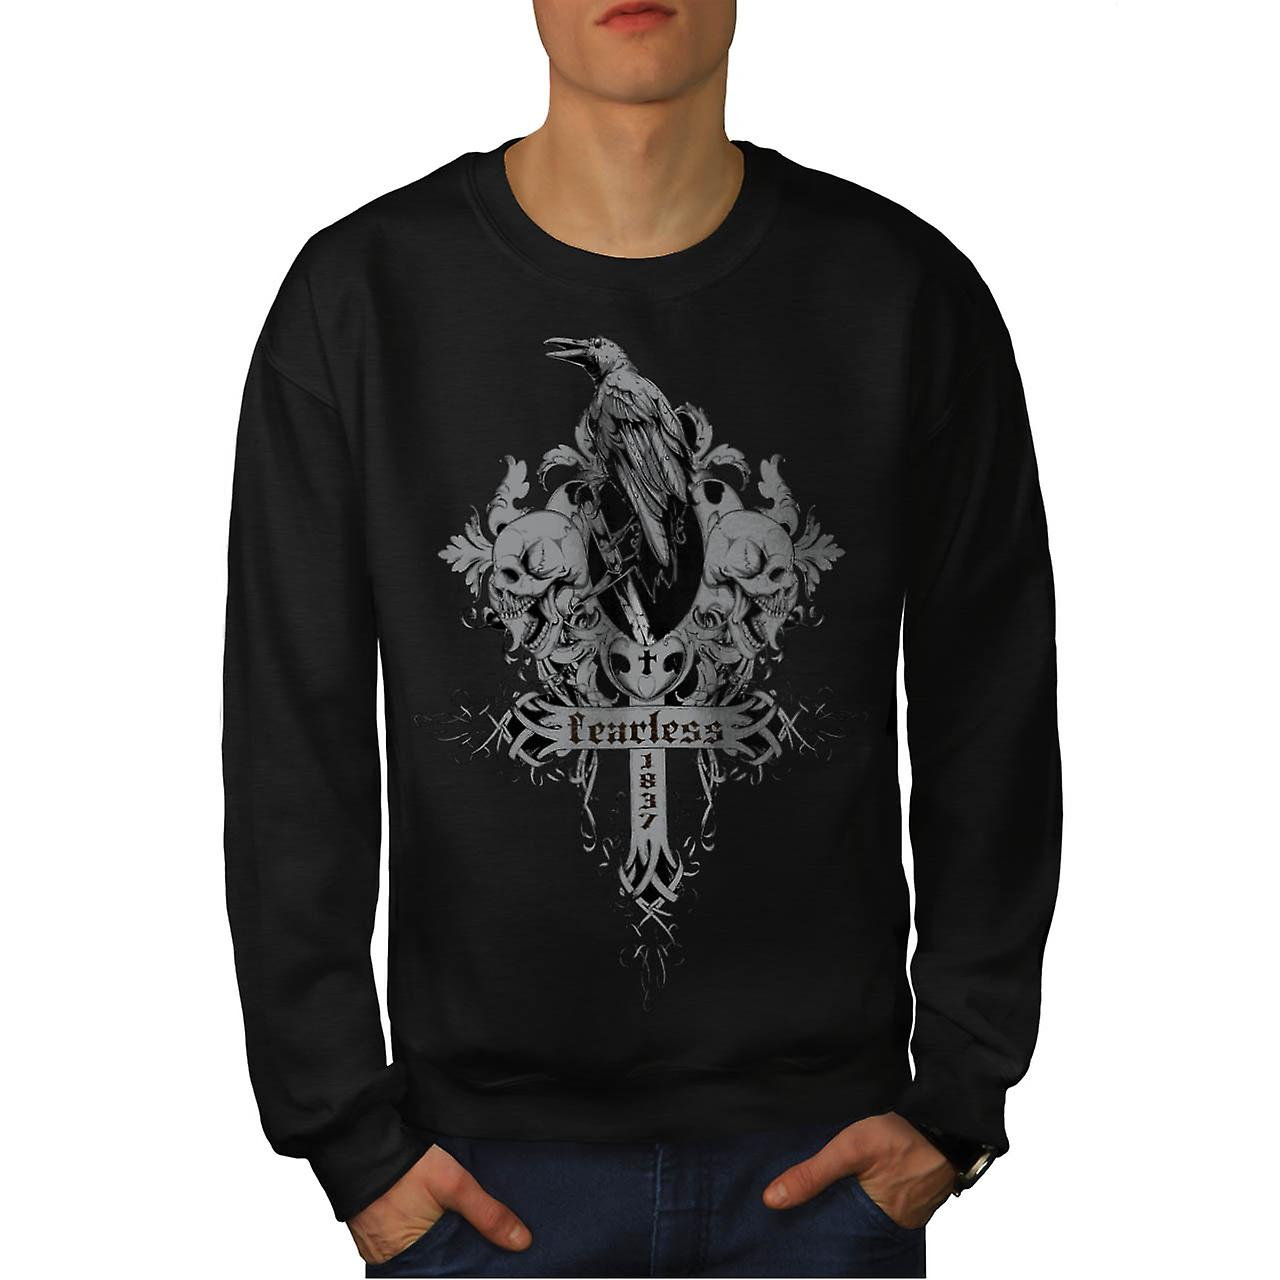 Fearless Death Crow Grave Yard Men Black Sweatshirt | Wellcoda